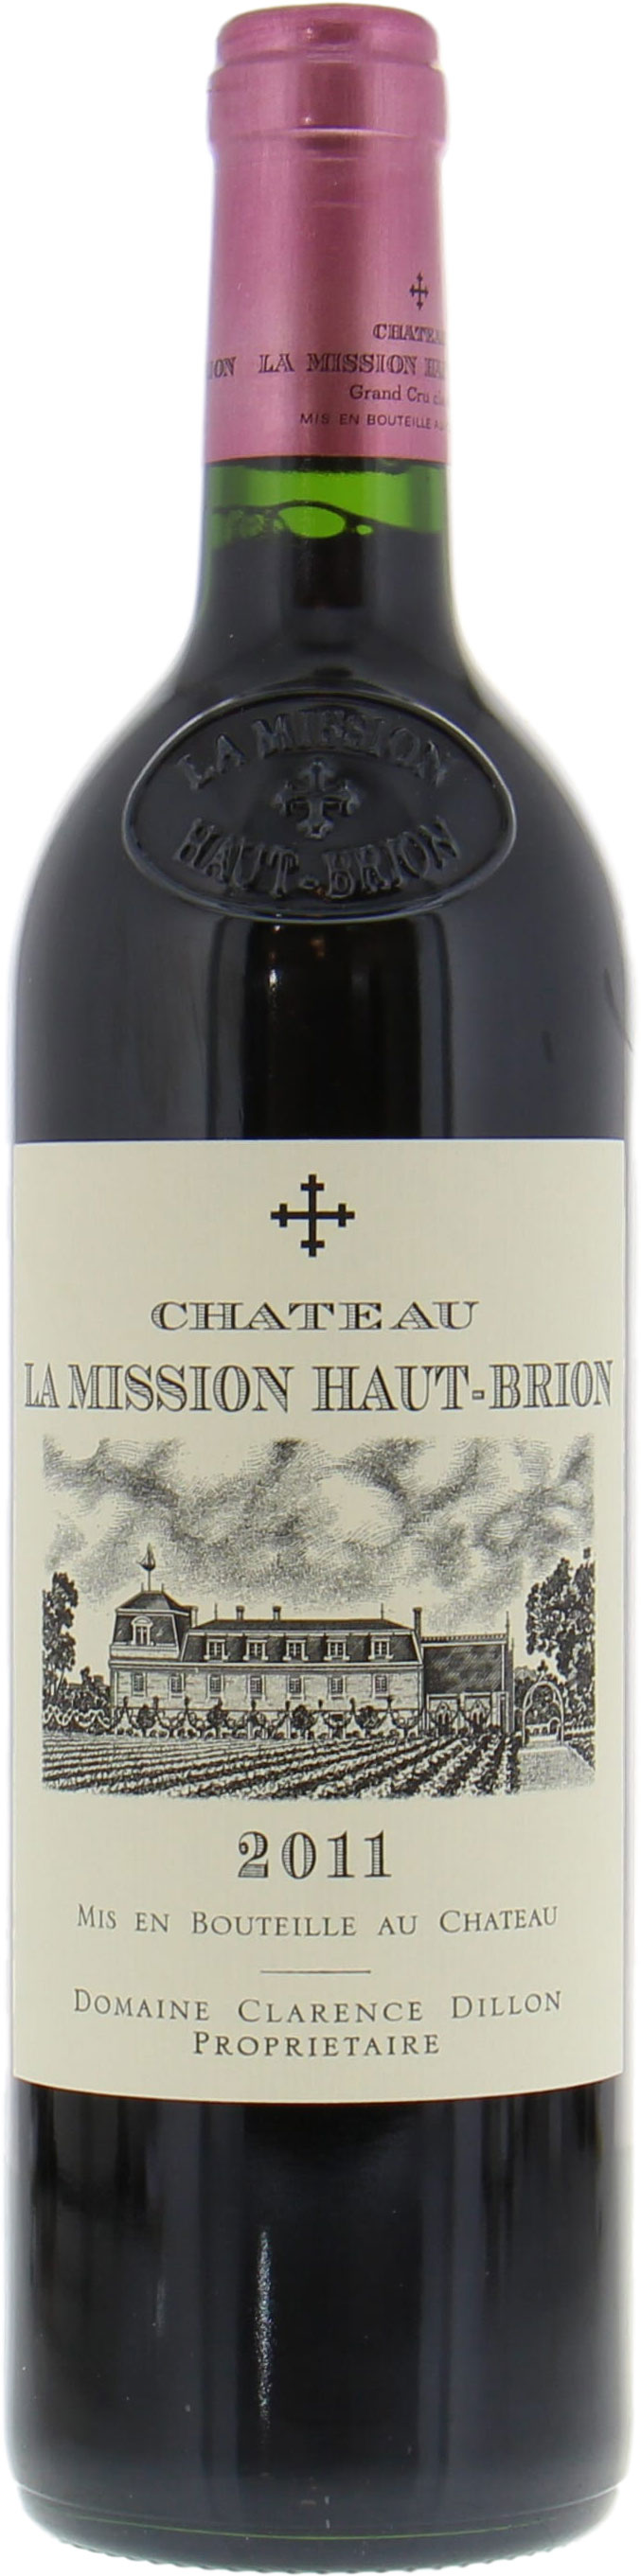 Chateau La Mission Haut Brion - Chateau La Mission Haut Brion 2011